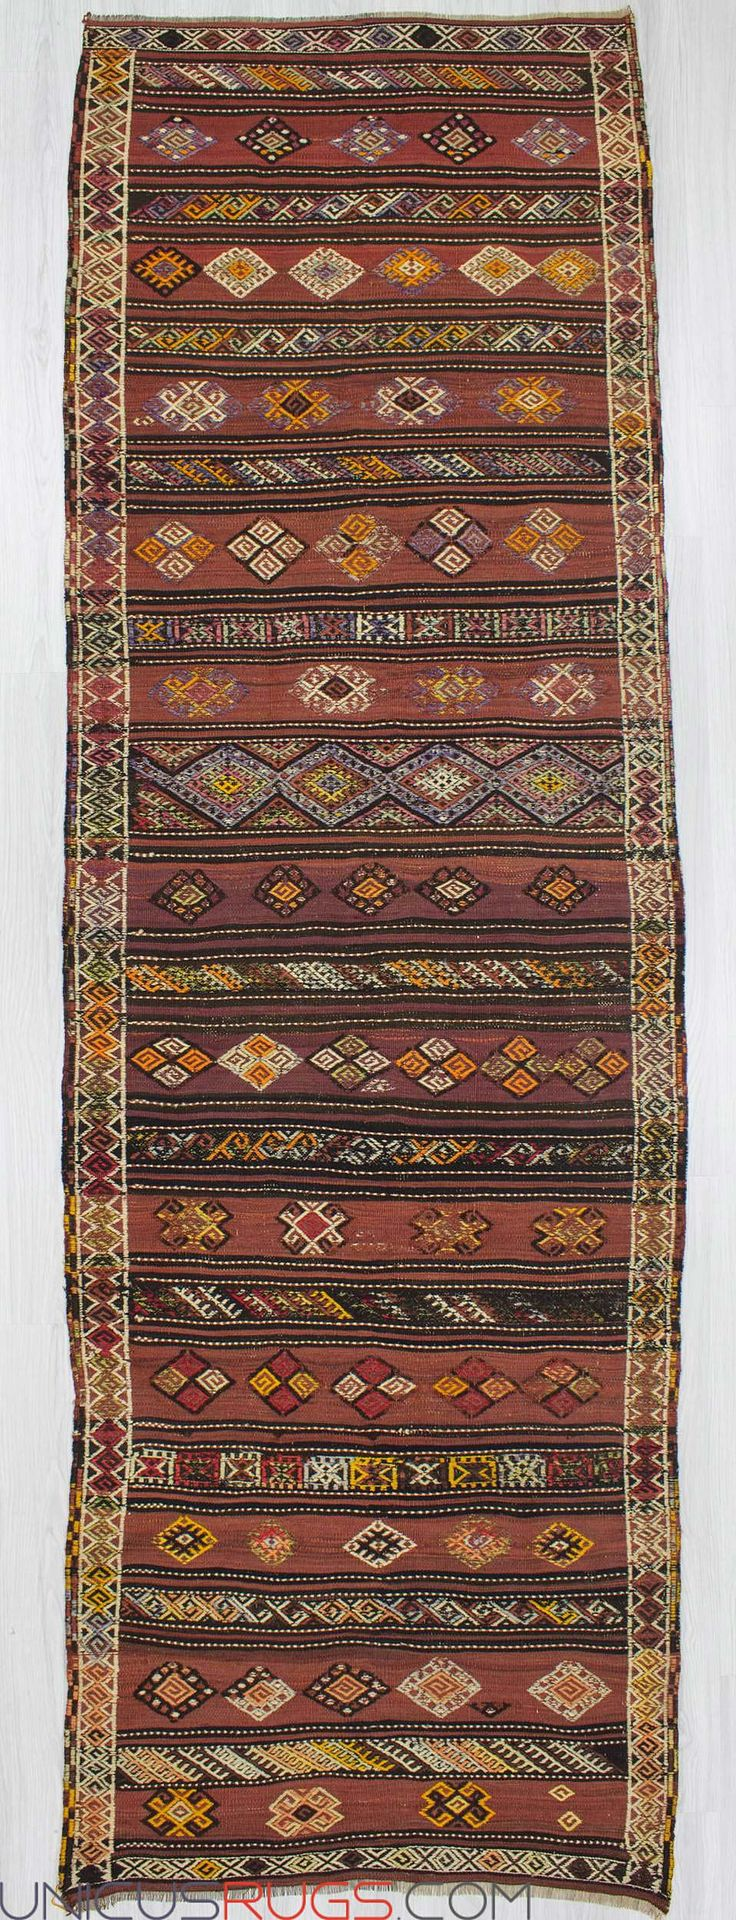 """Vintage kilim runner fron Malatya region of Turkey.İn good condition.Approximately 55-65 years old Width: 3' 9"""" - Length: 11' 9"""" RUNNERS"""